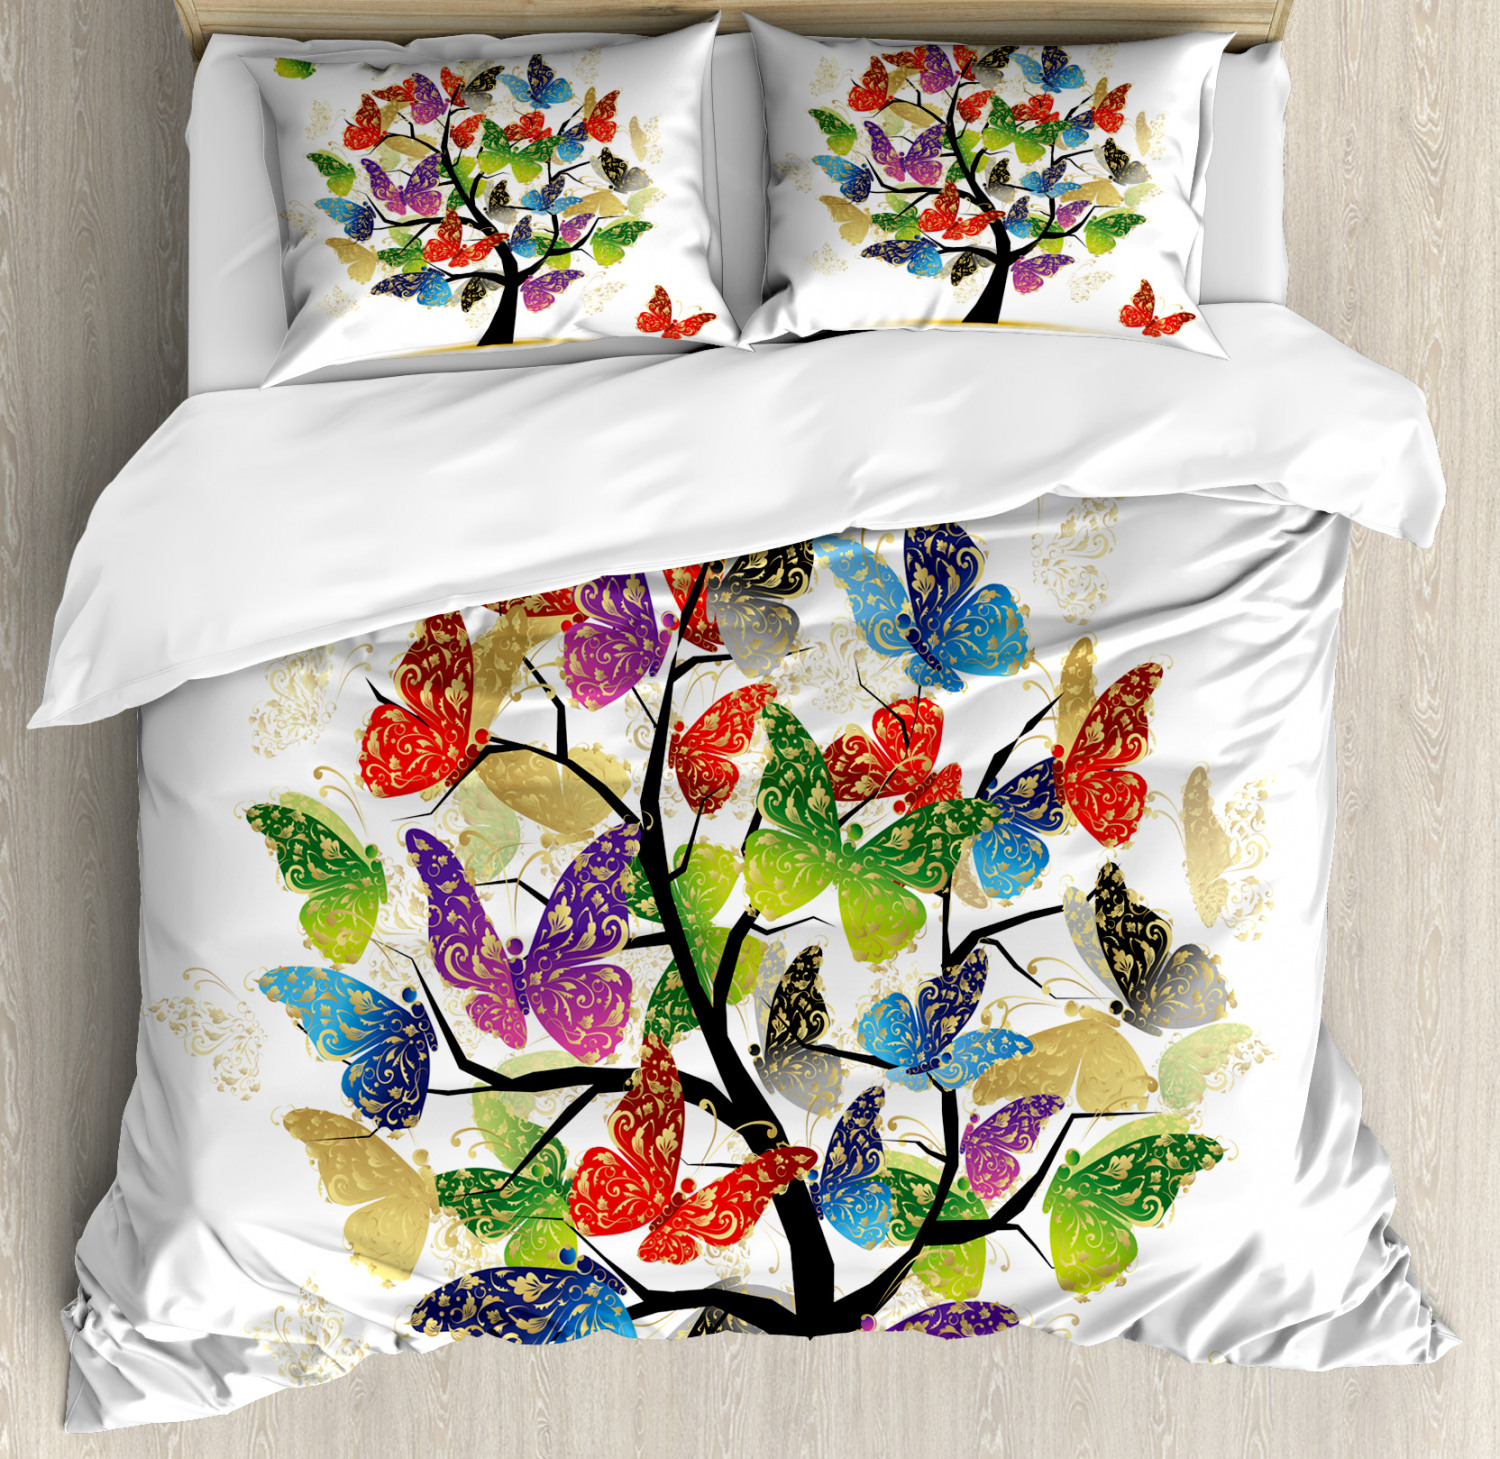 colorful Duvet Cover Set with Pillow Shams Floral Butterfly Leaf Print